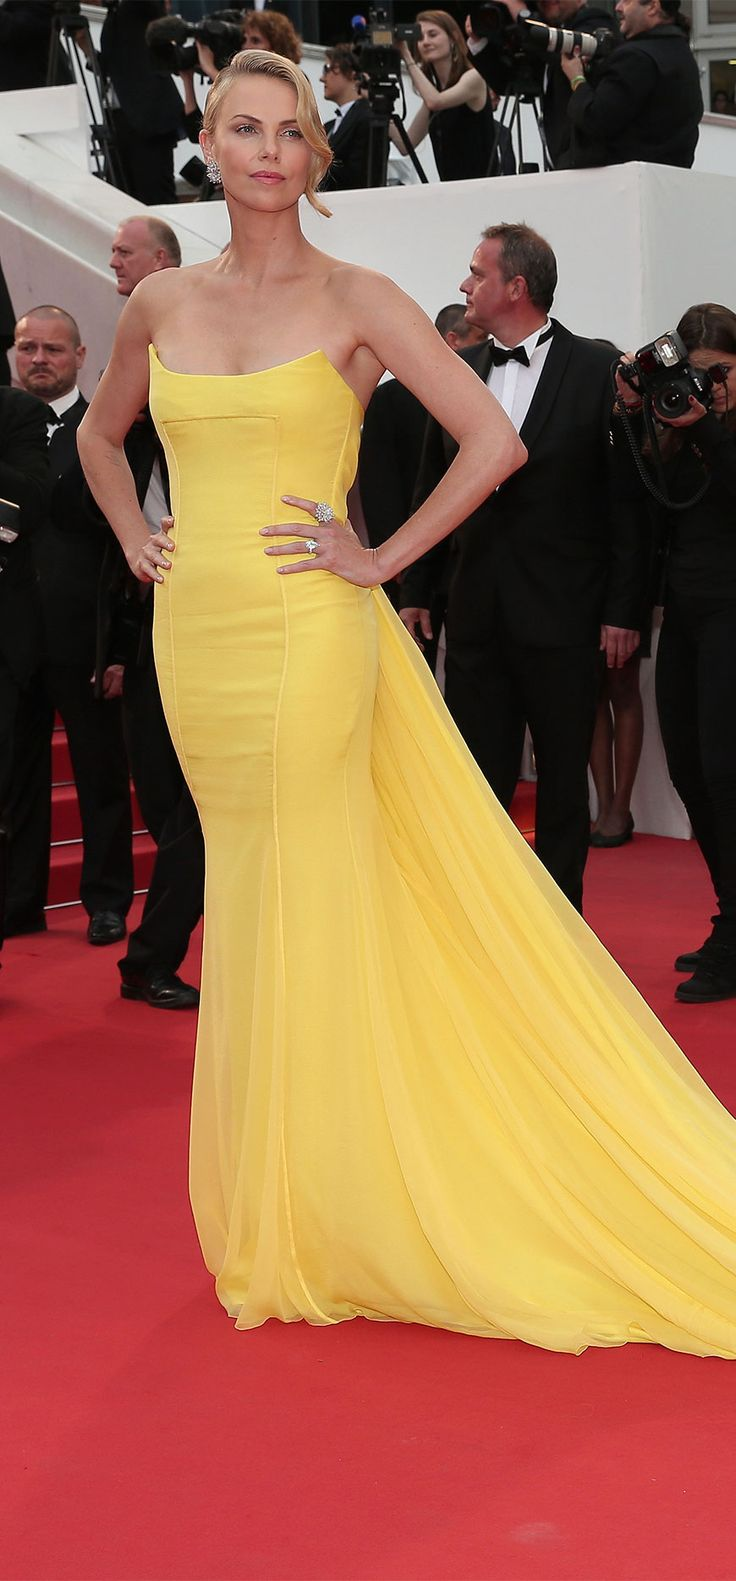 Miranda Kerr Is a Total Knockout at Cannes | Charlize ... Charlize Theron